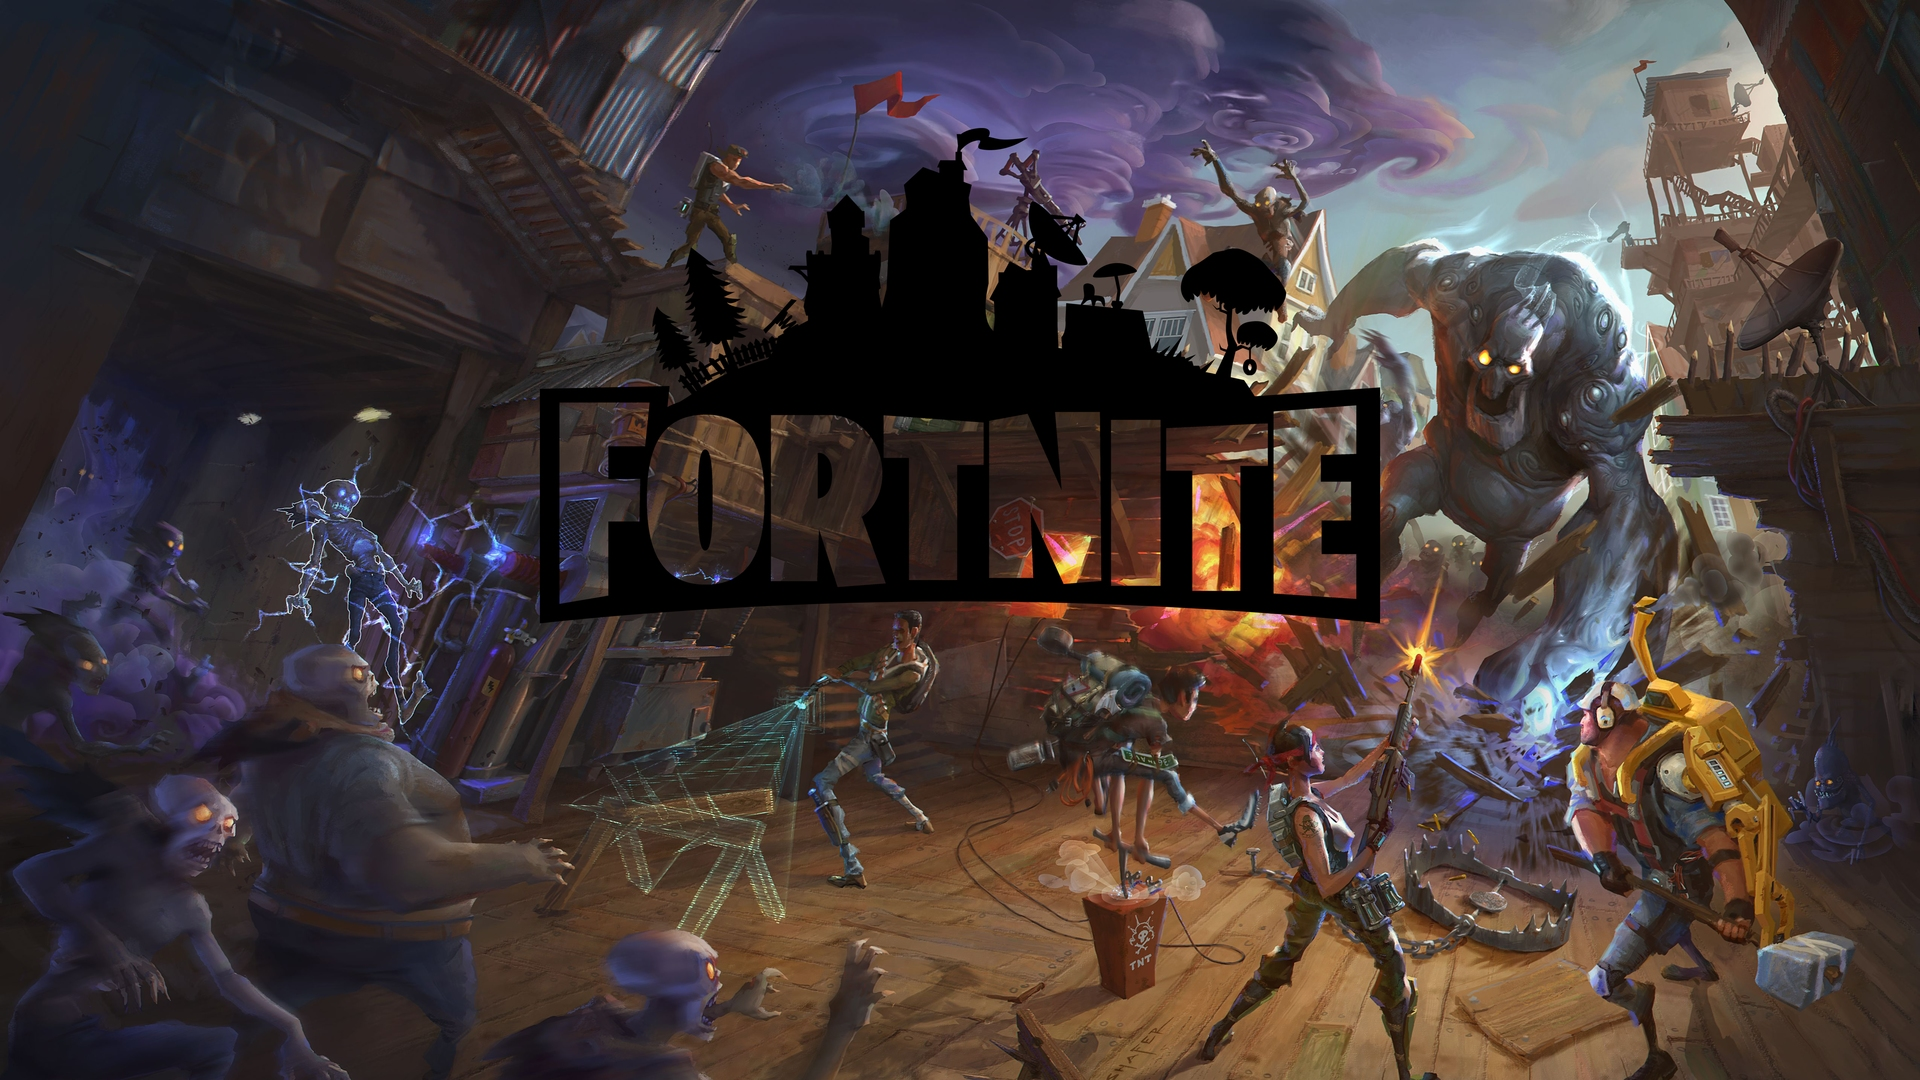 Fortnite Pvp Wallpaper   WallsKid 1920x1080